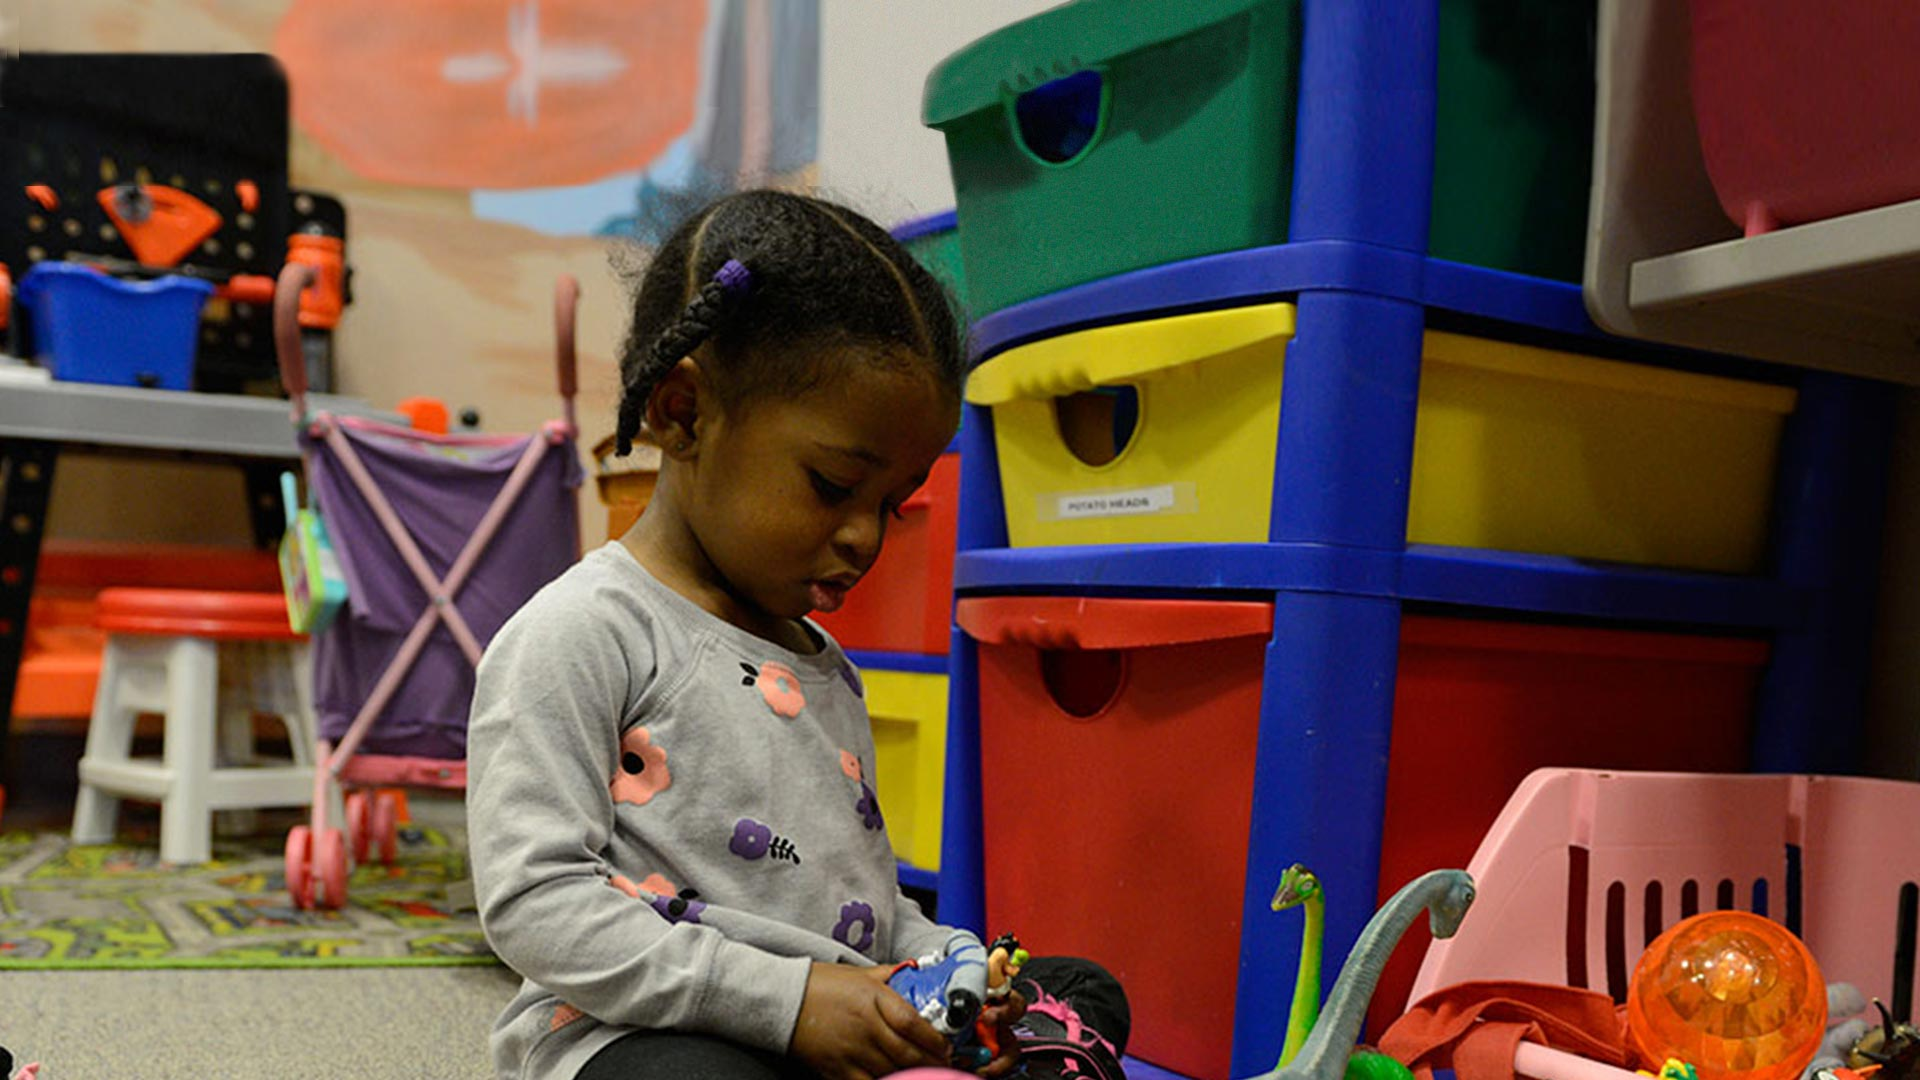 Young child playing in child care center